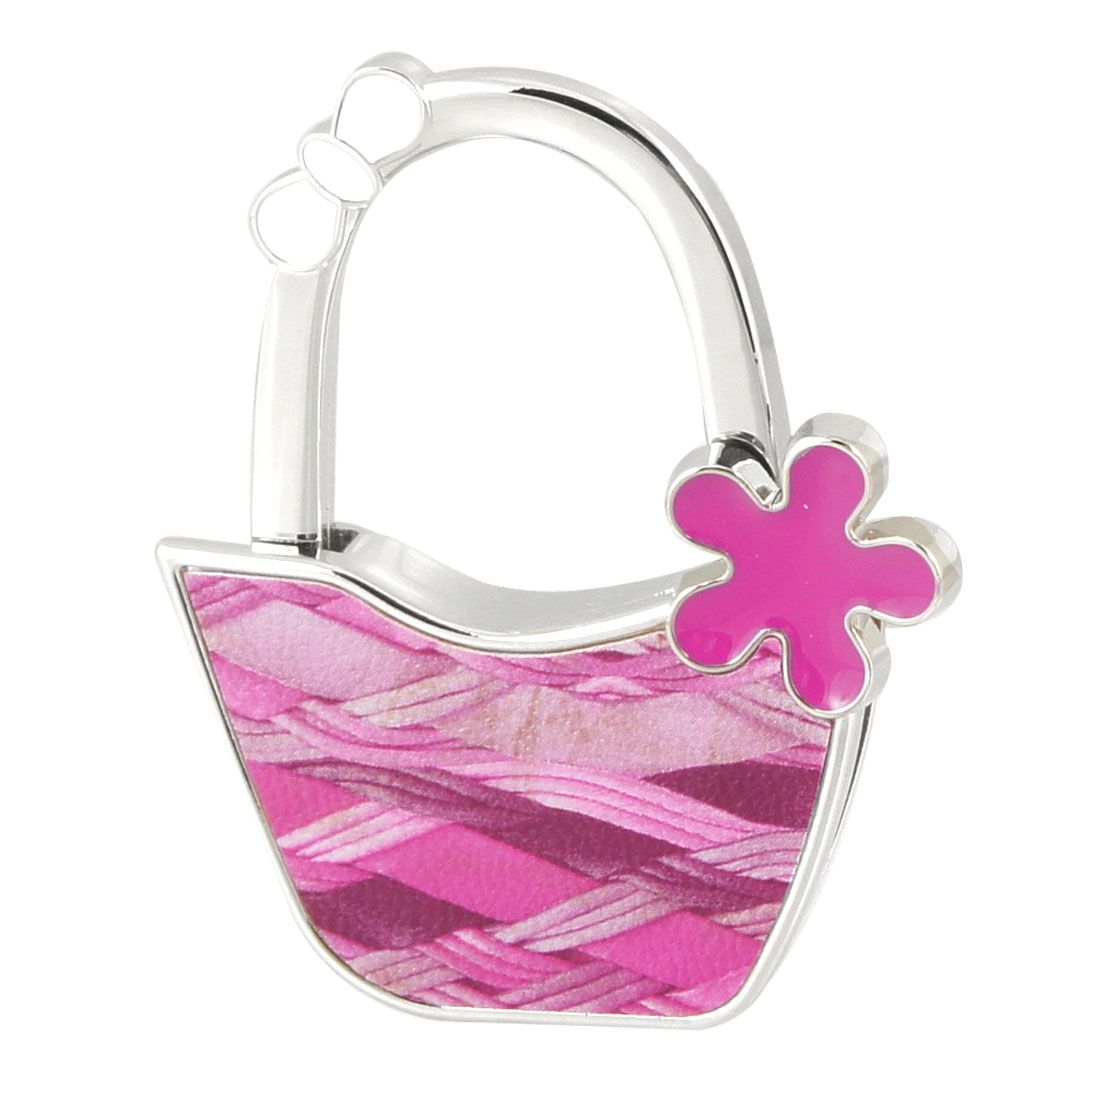 Silver Tone Fuchsia Metal Check Printed Bag Shaped Folding Handbag Hook